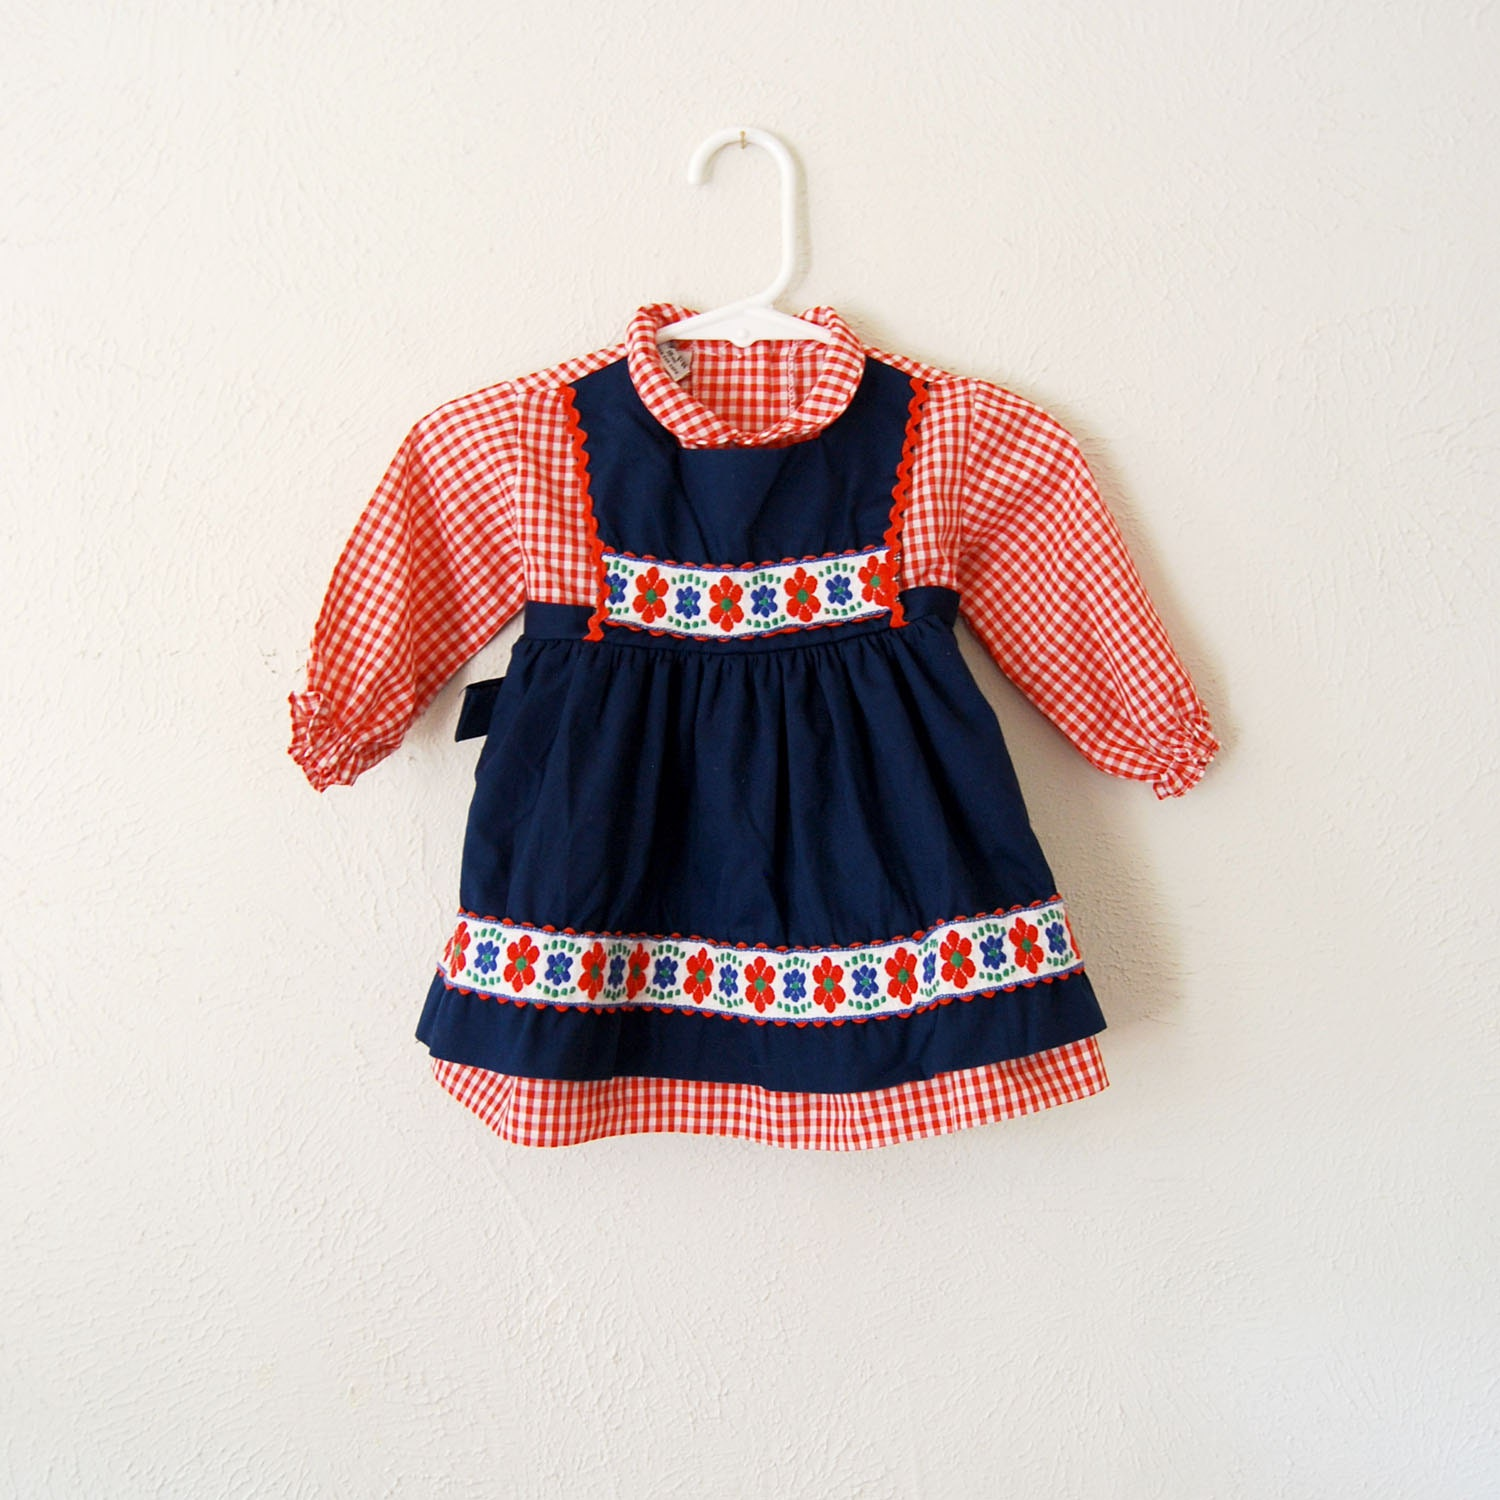 vintage baby girl swiss dress for the mountains - olliesvintage